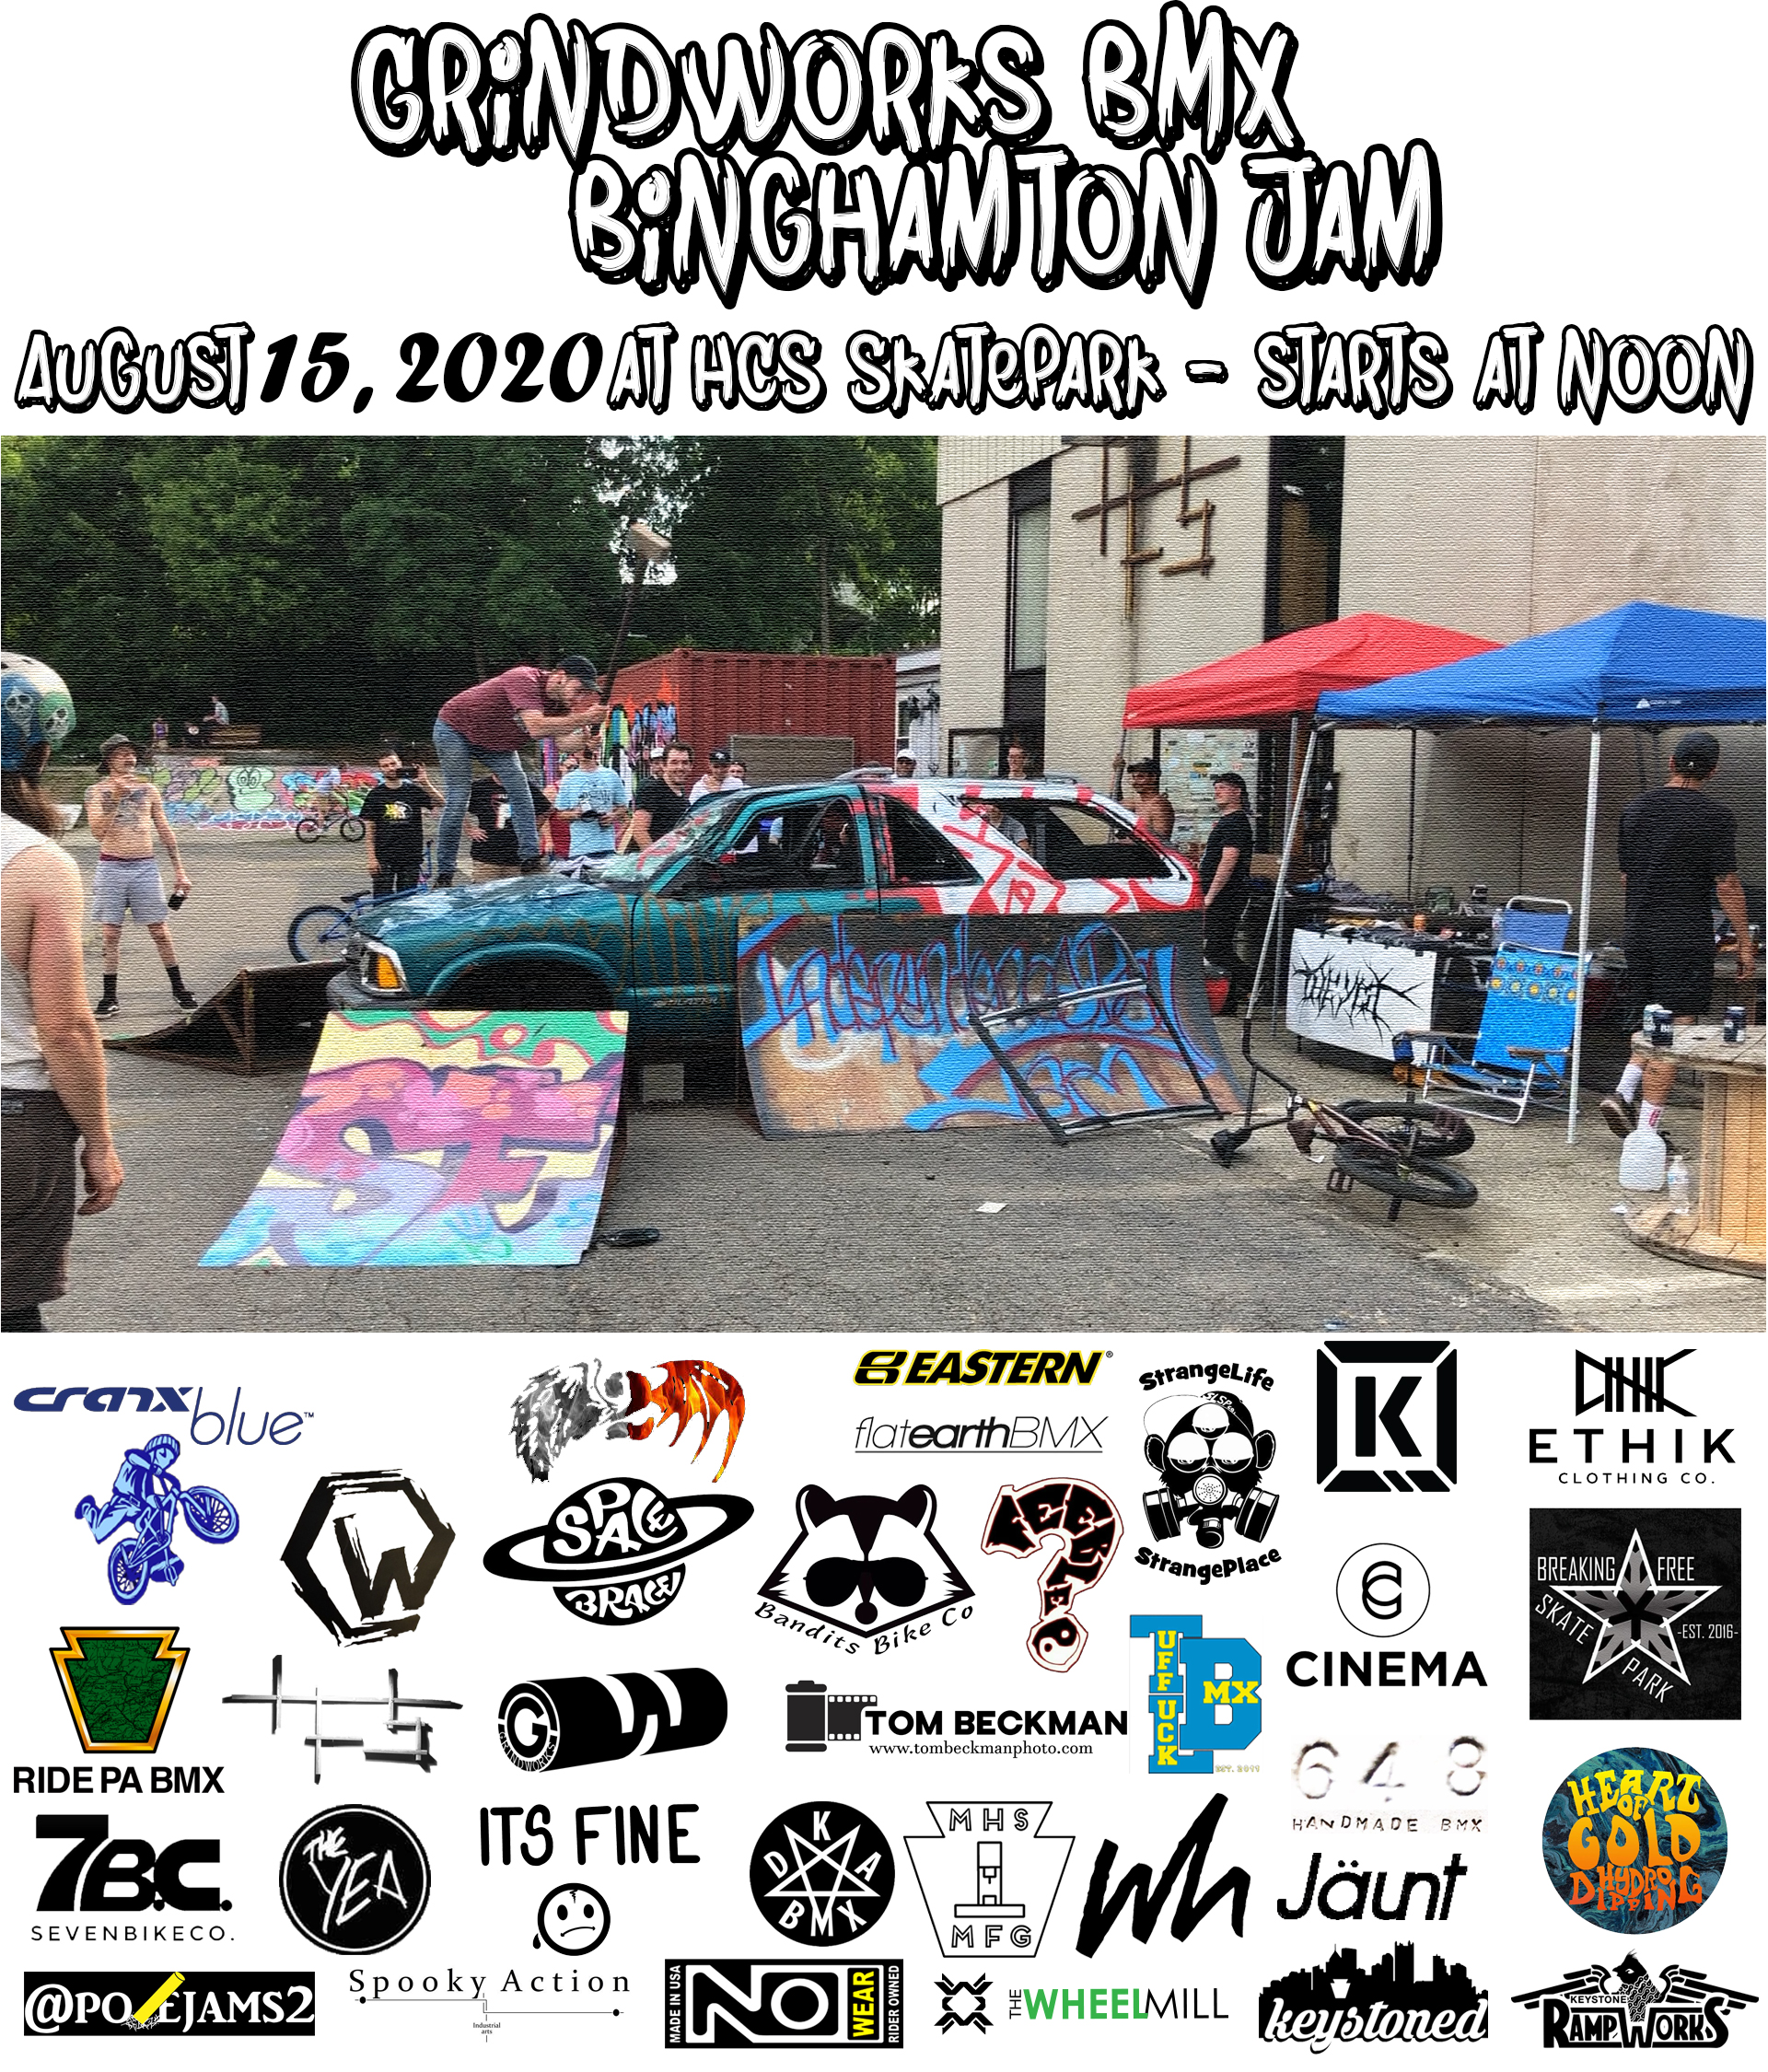 Binghamton Jam Flyer Rev 5